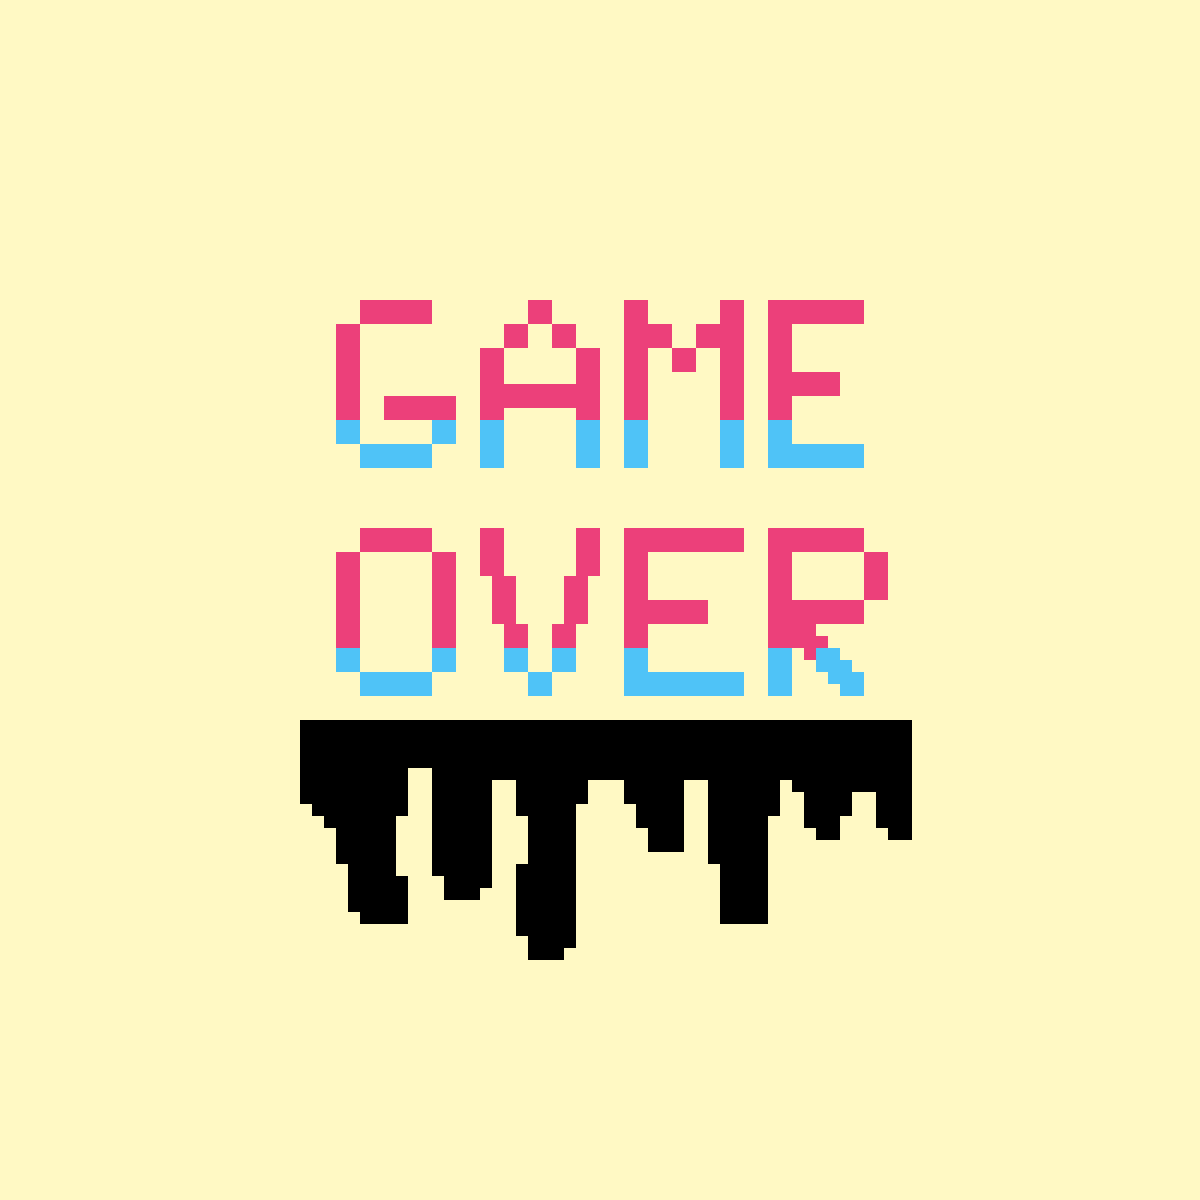 Game Over by Nathicha-Miki15